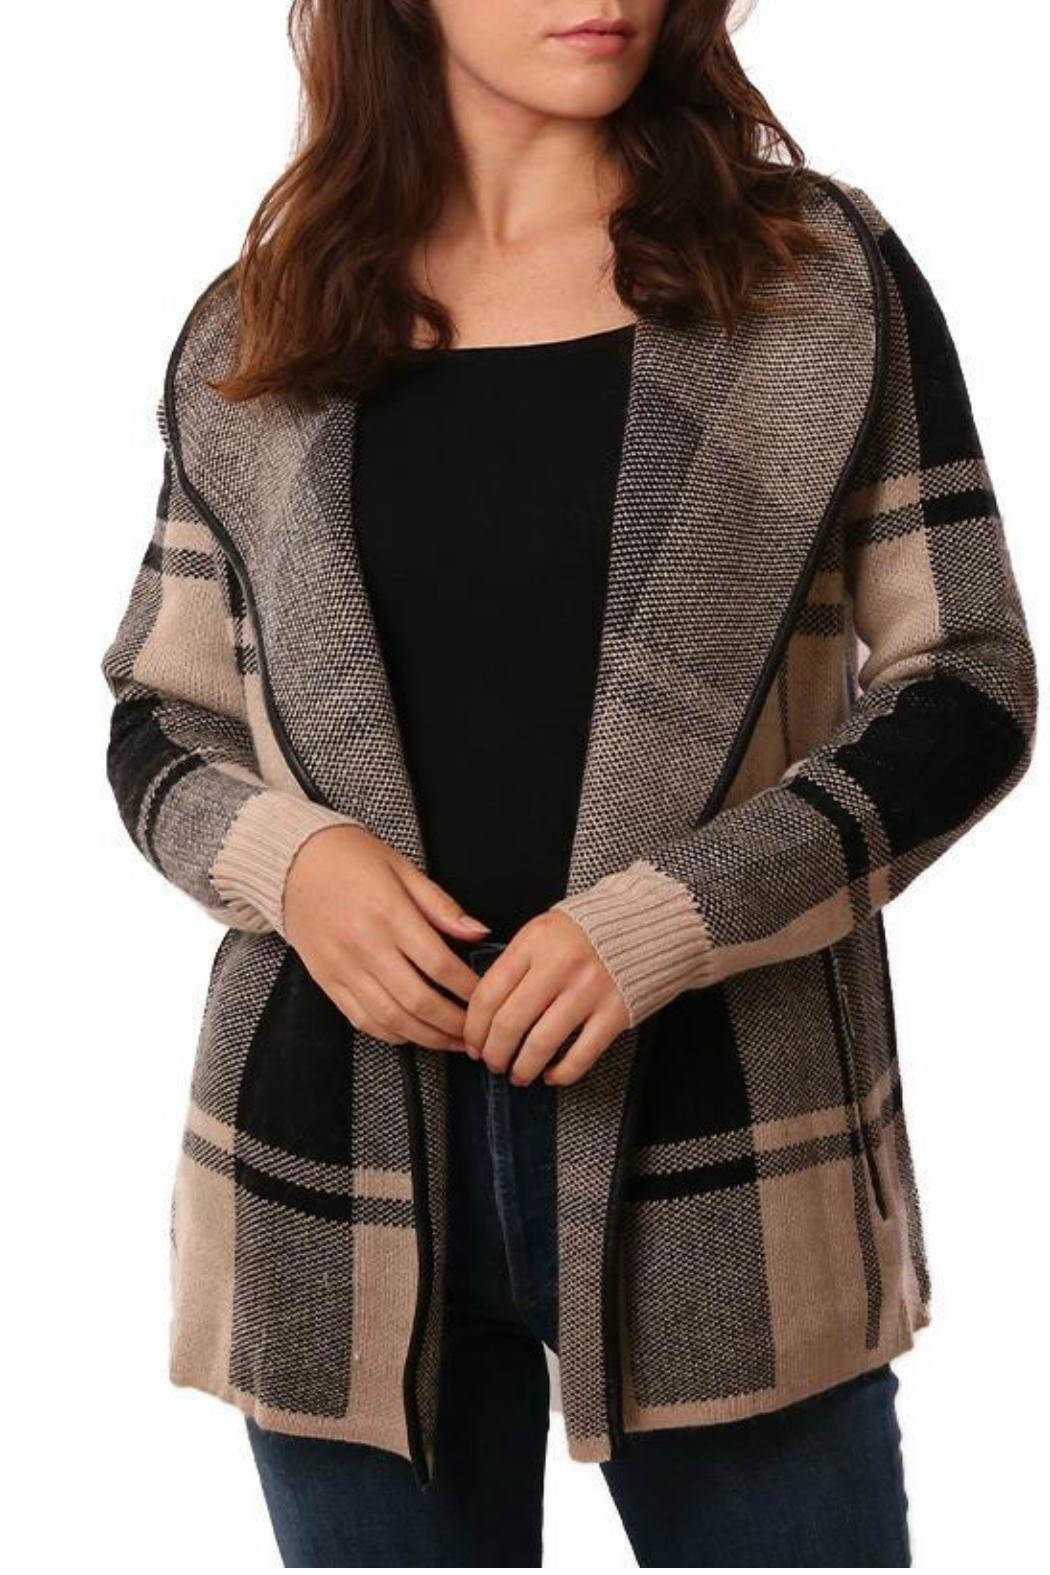 METRIC Plaid Cardigan - Main Image